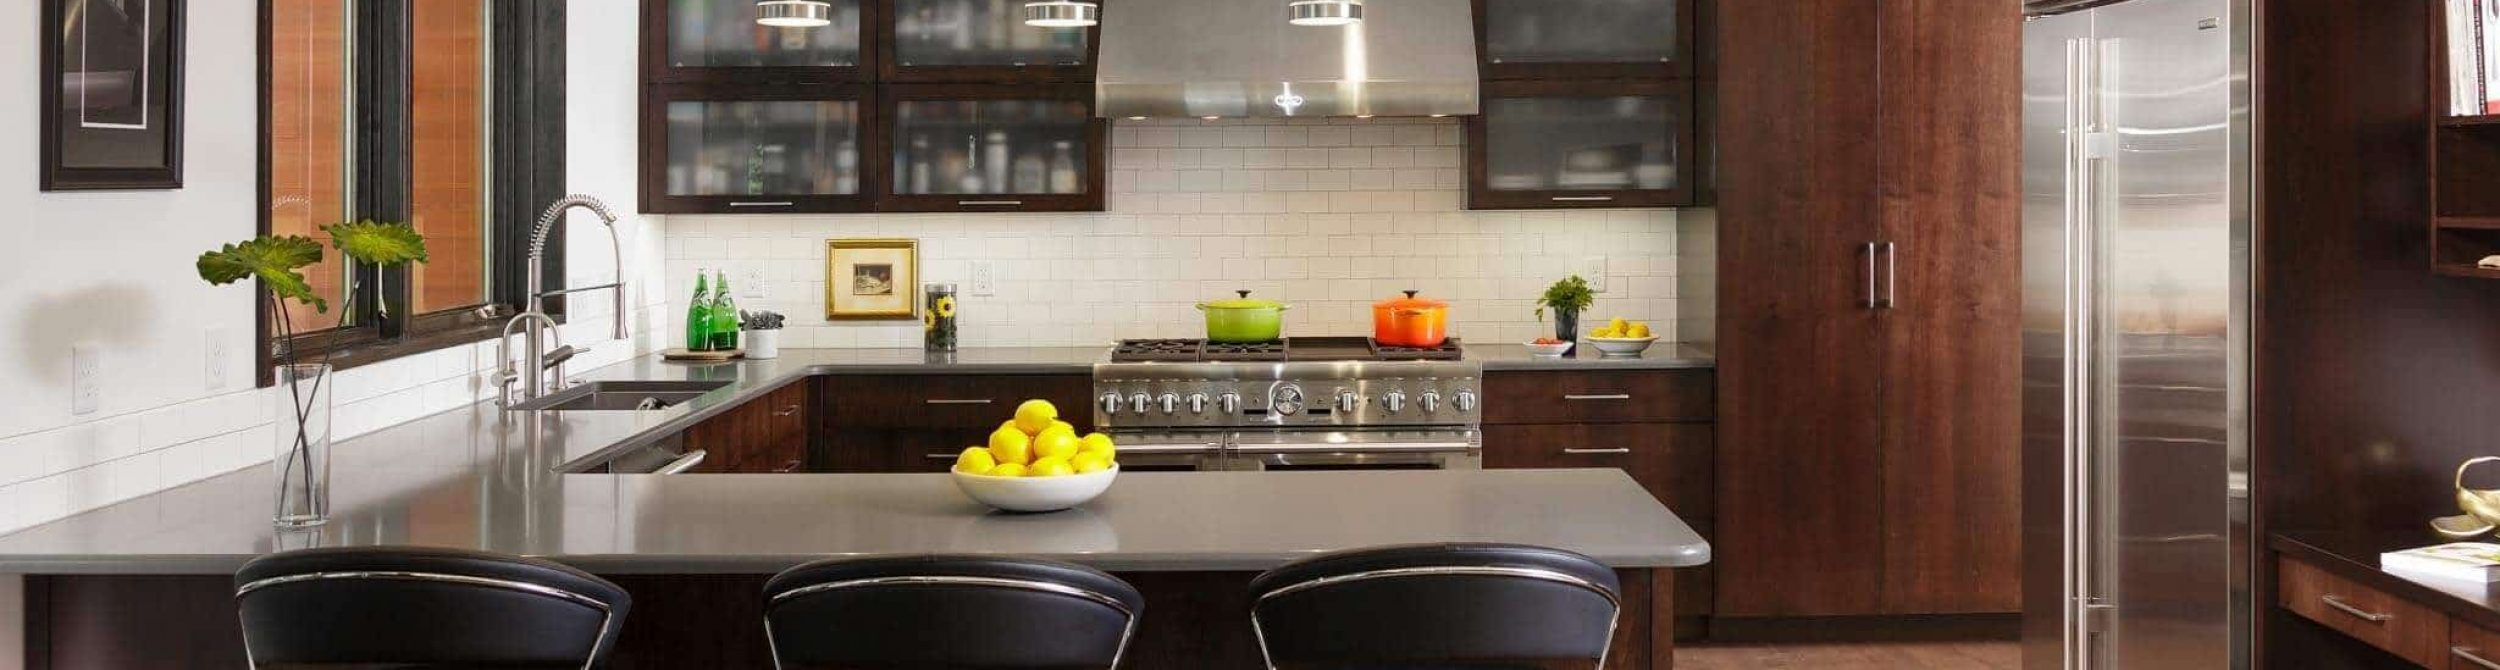 Dark colored kitchen cabinets with with stainless steel appliances